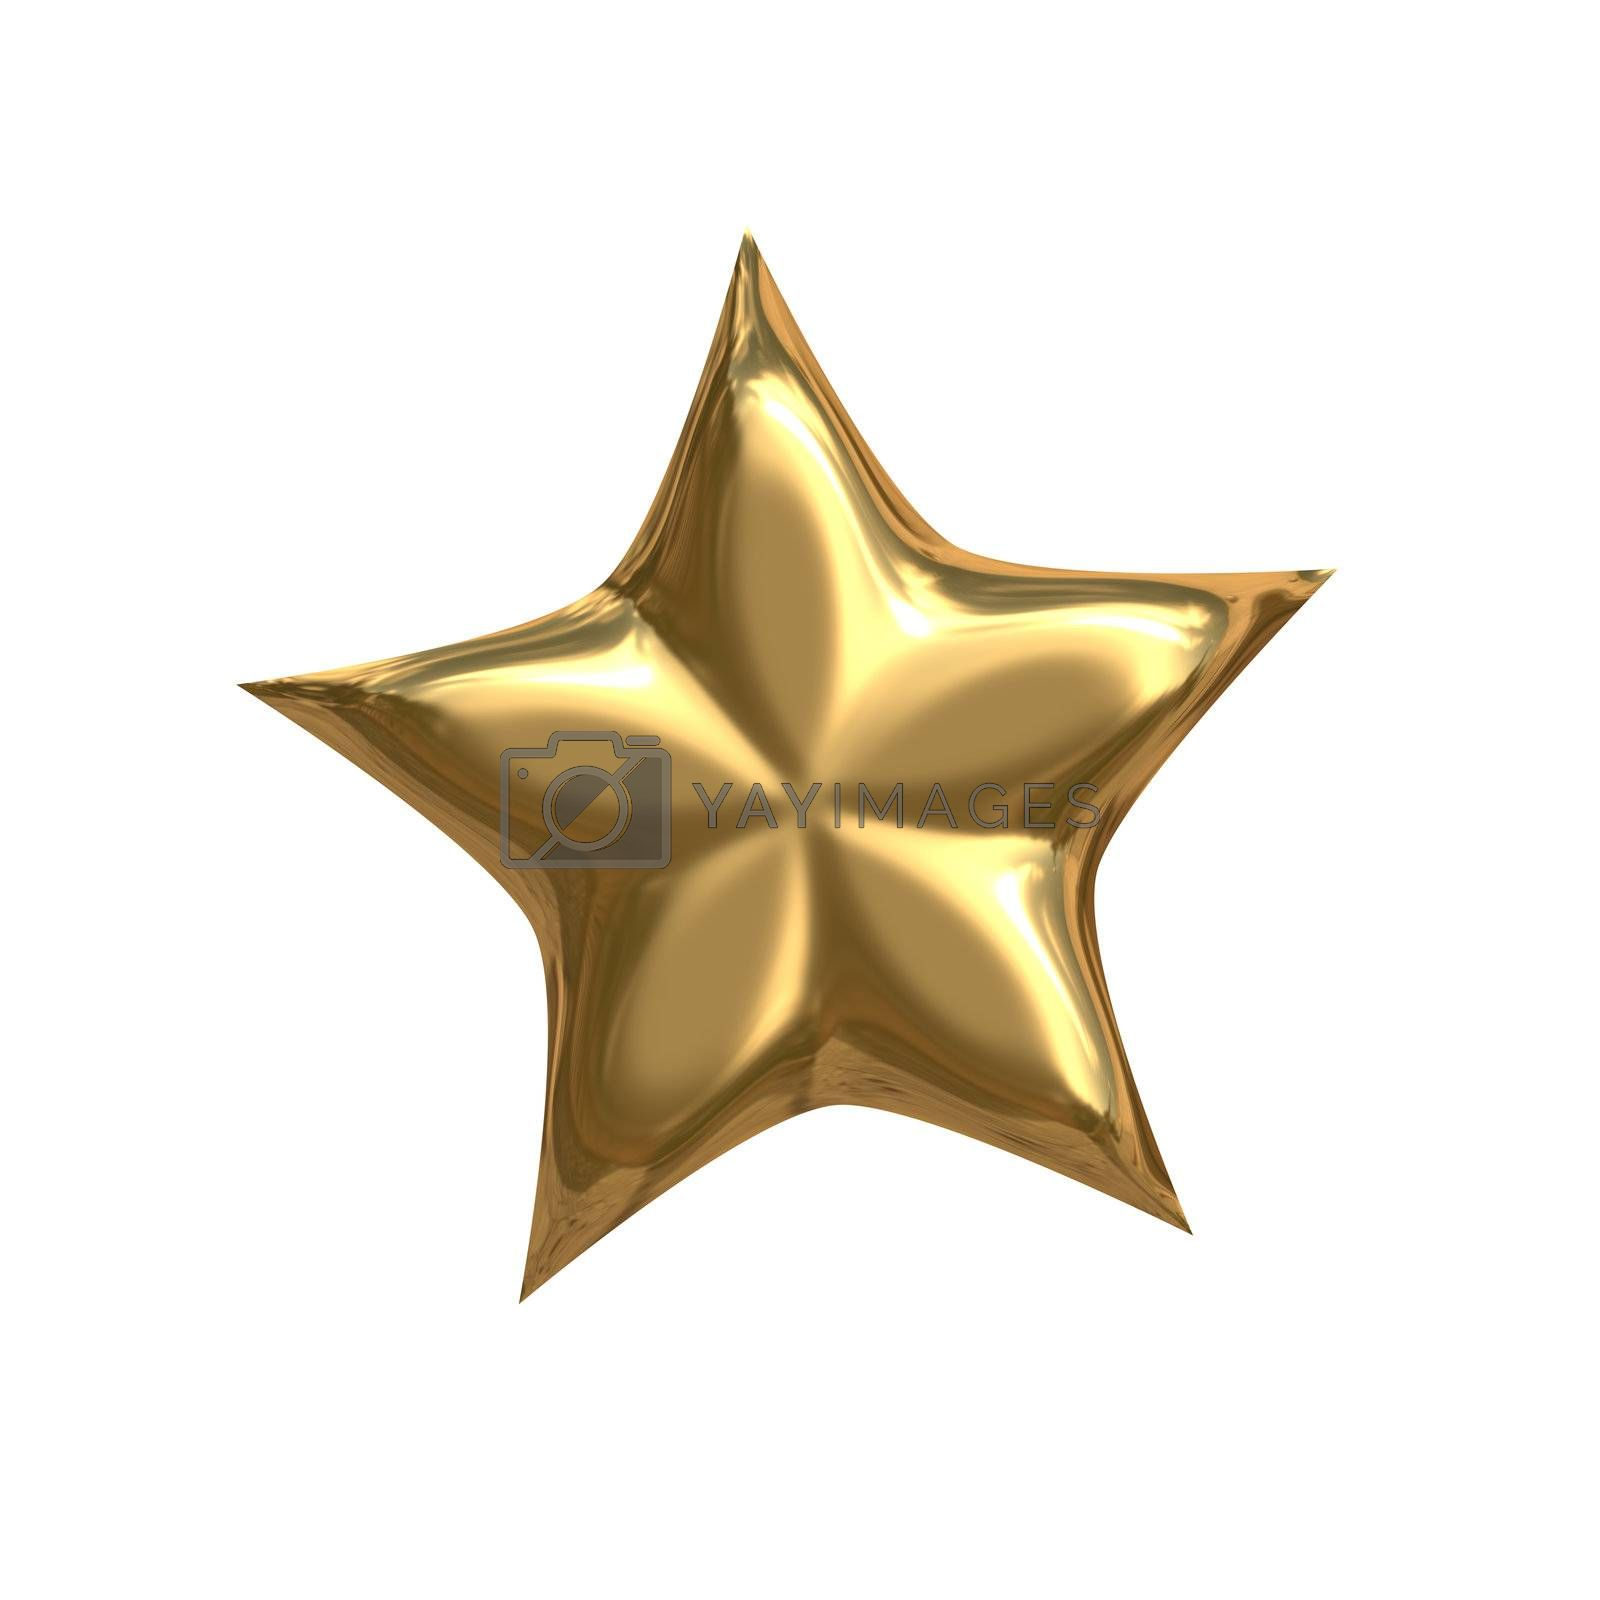 Royalty free image of golden star by magann